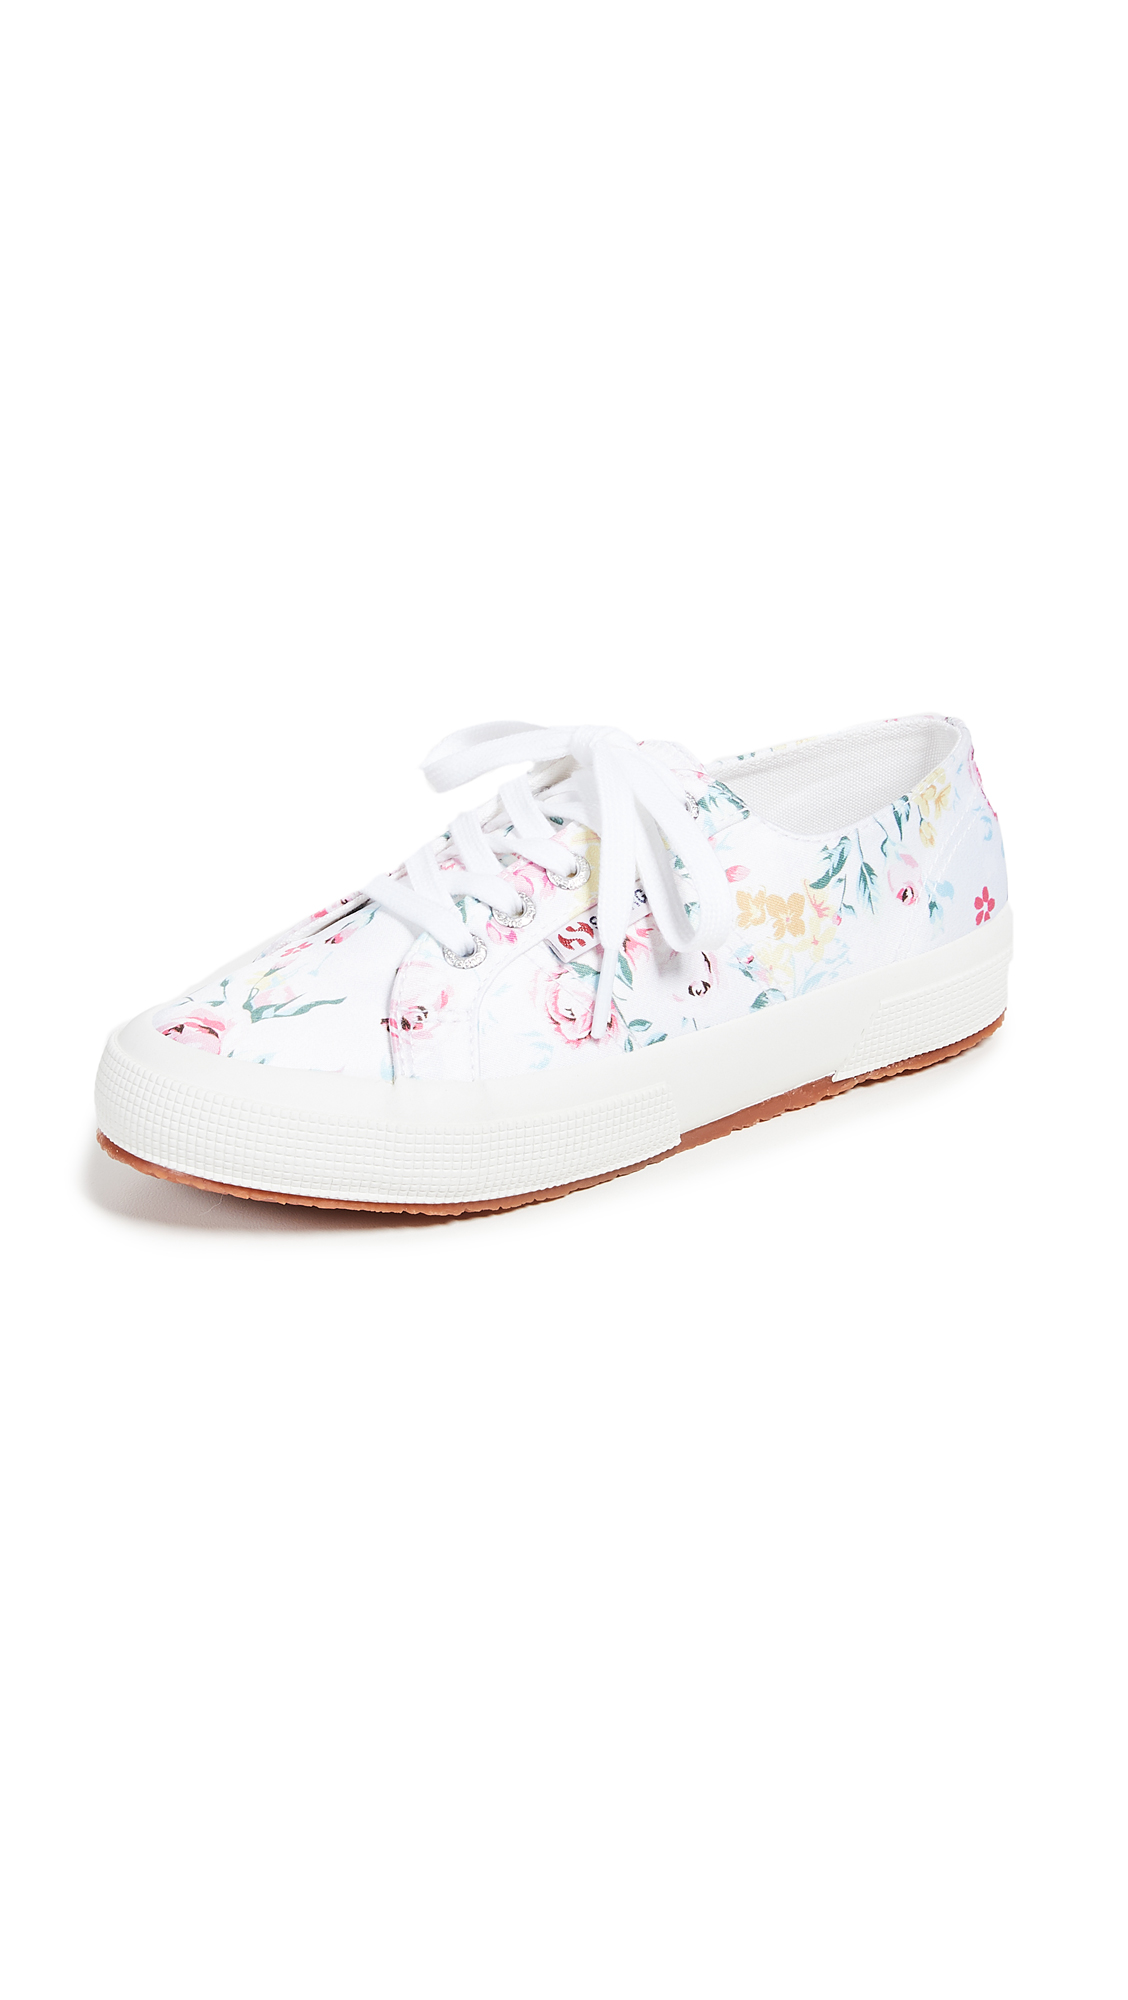 Photo of Superga 2750 Floral Print Sneakers - buy Superga shoes